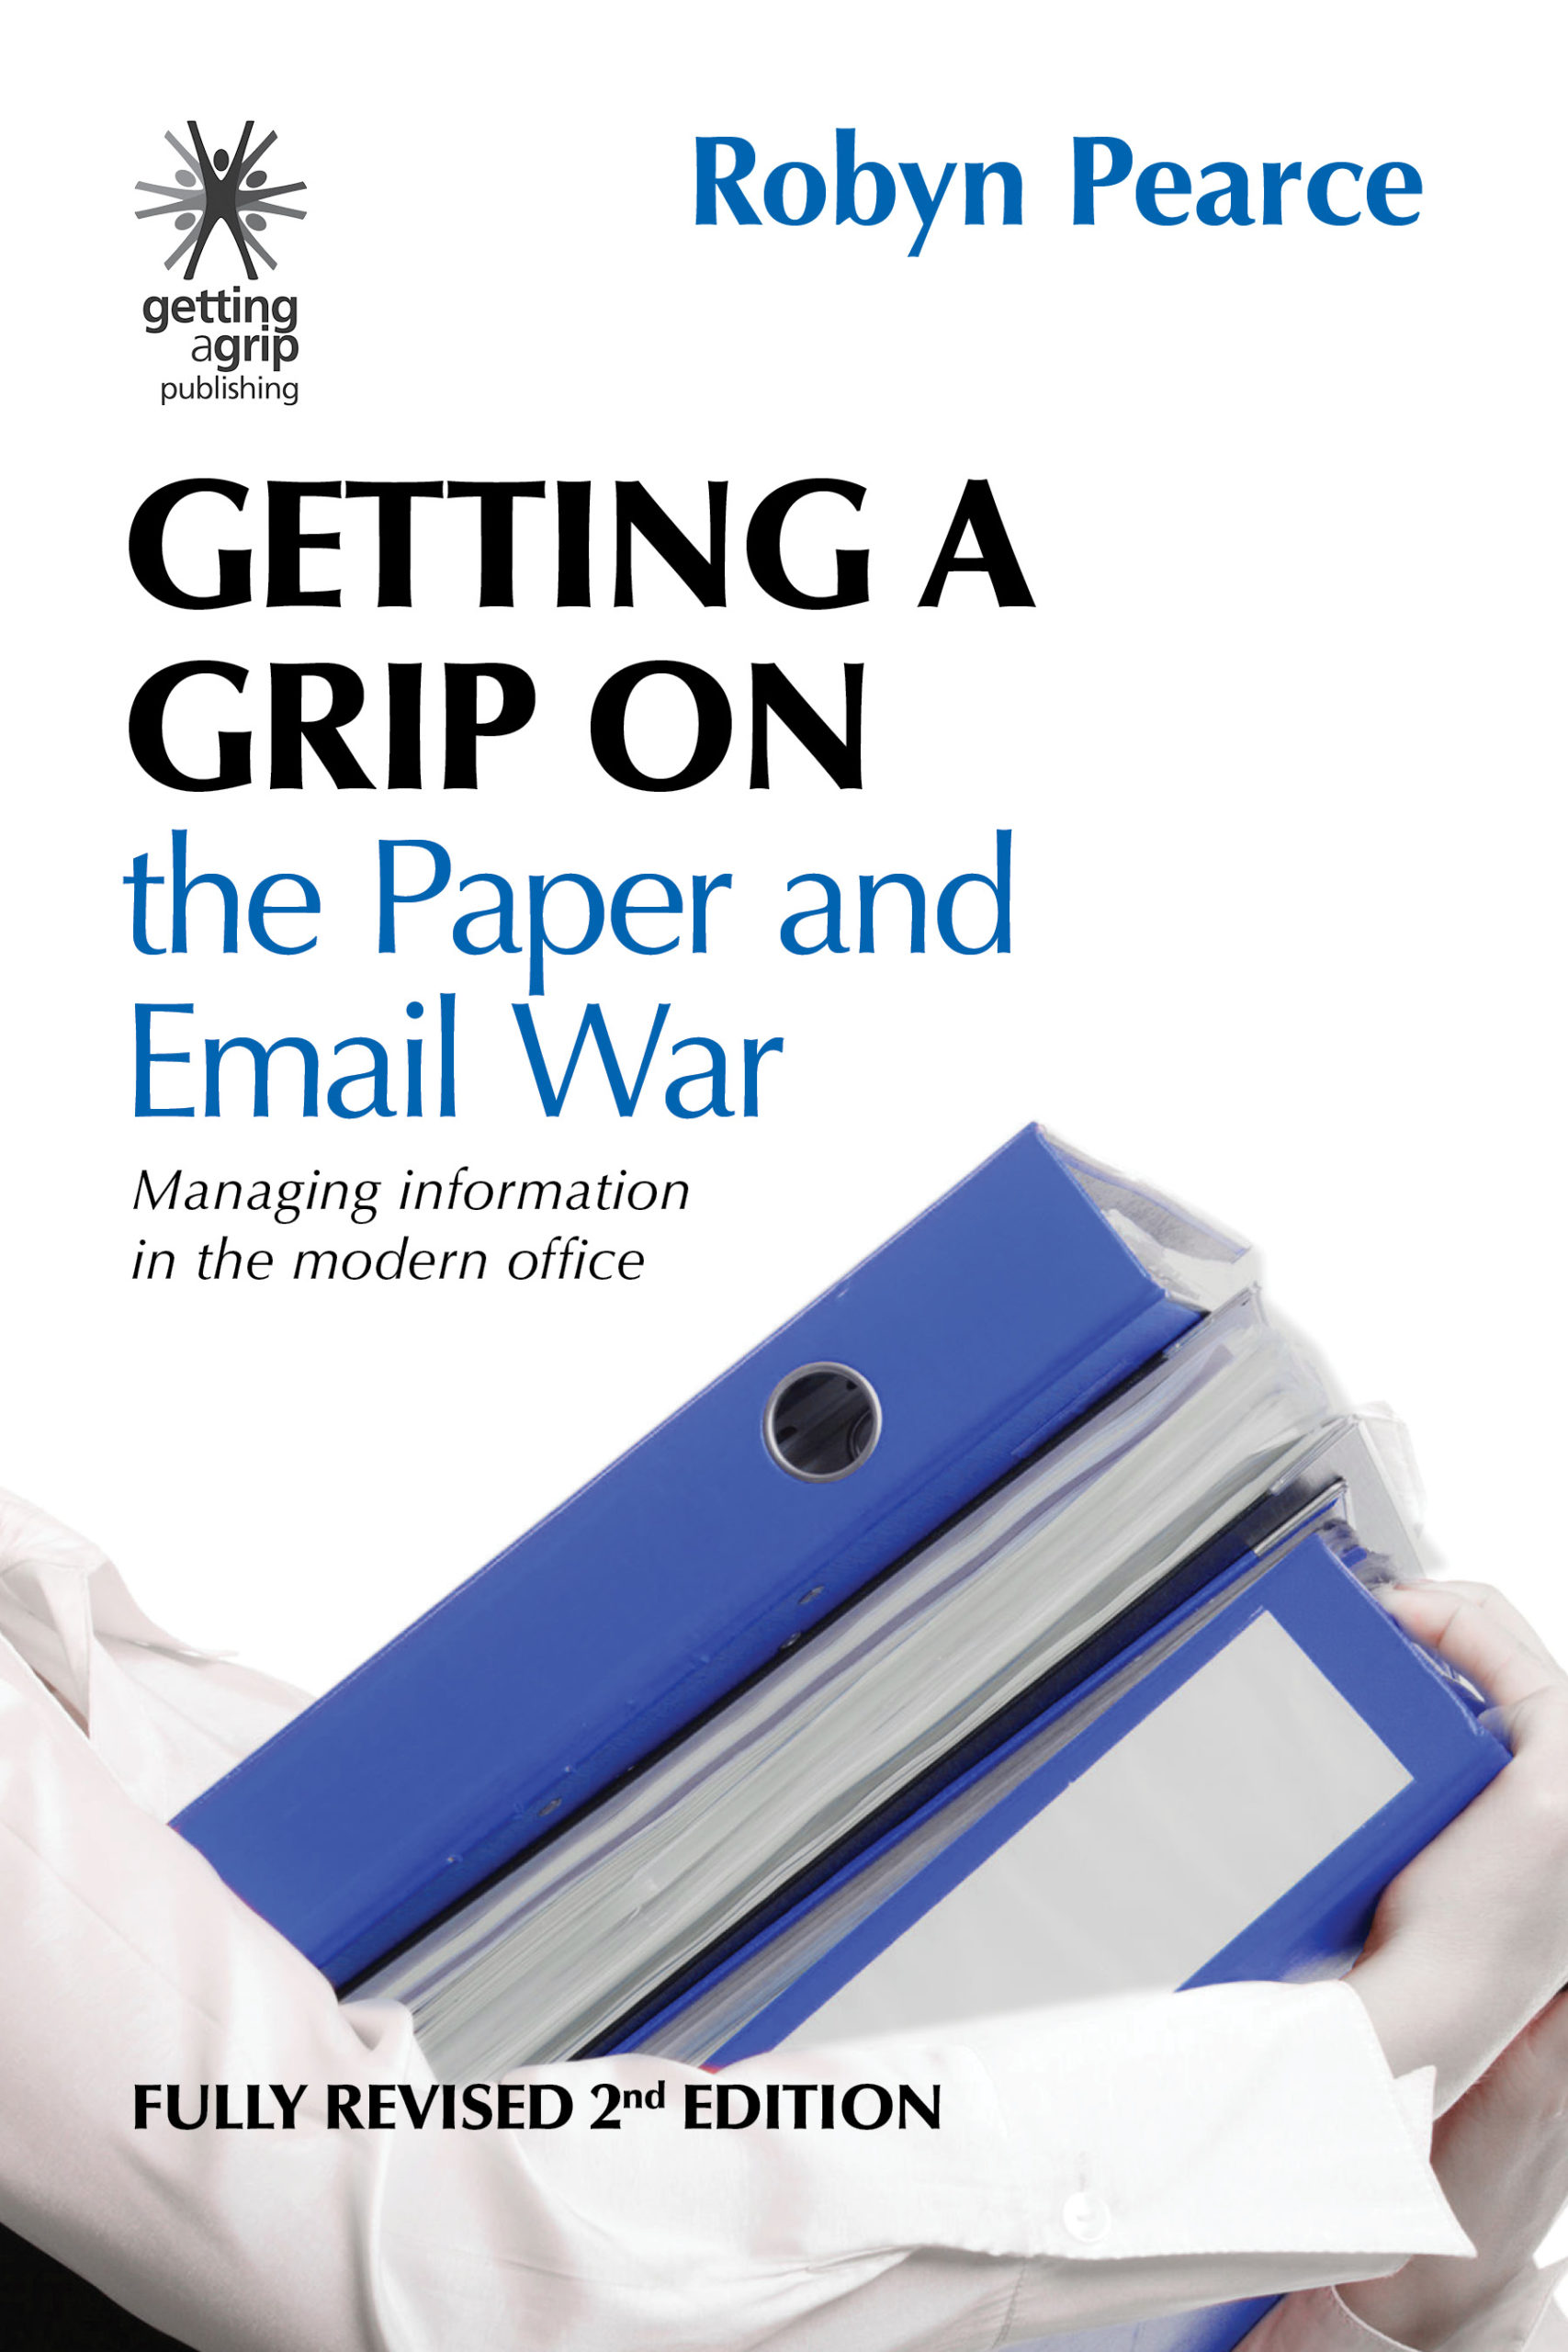 Getting A Grip on the Paper War – Managing information in the modern office